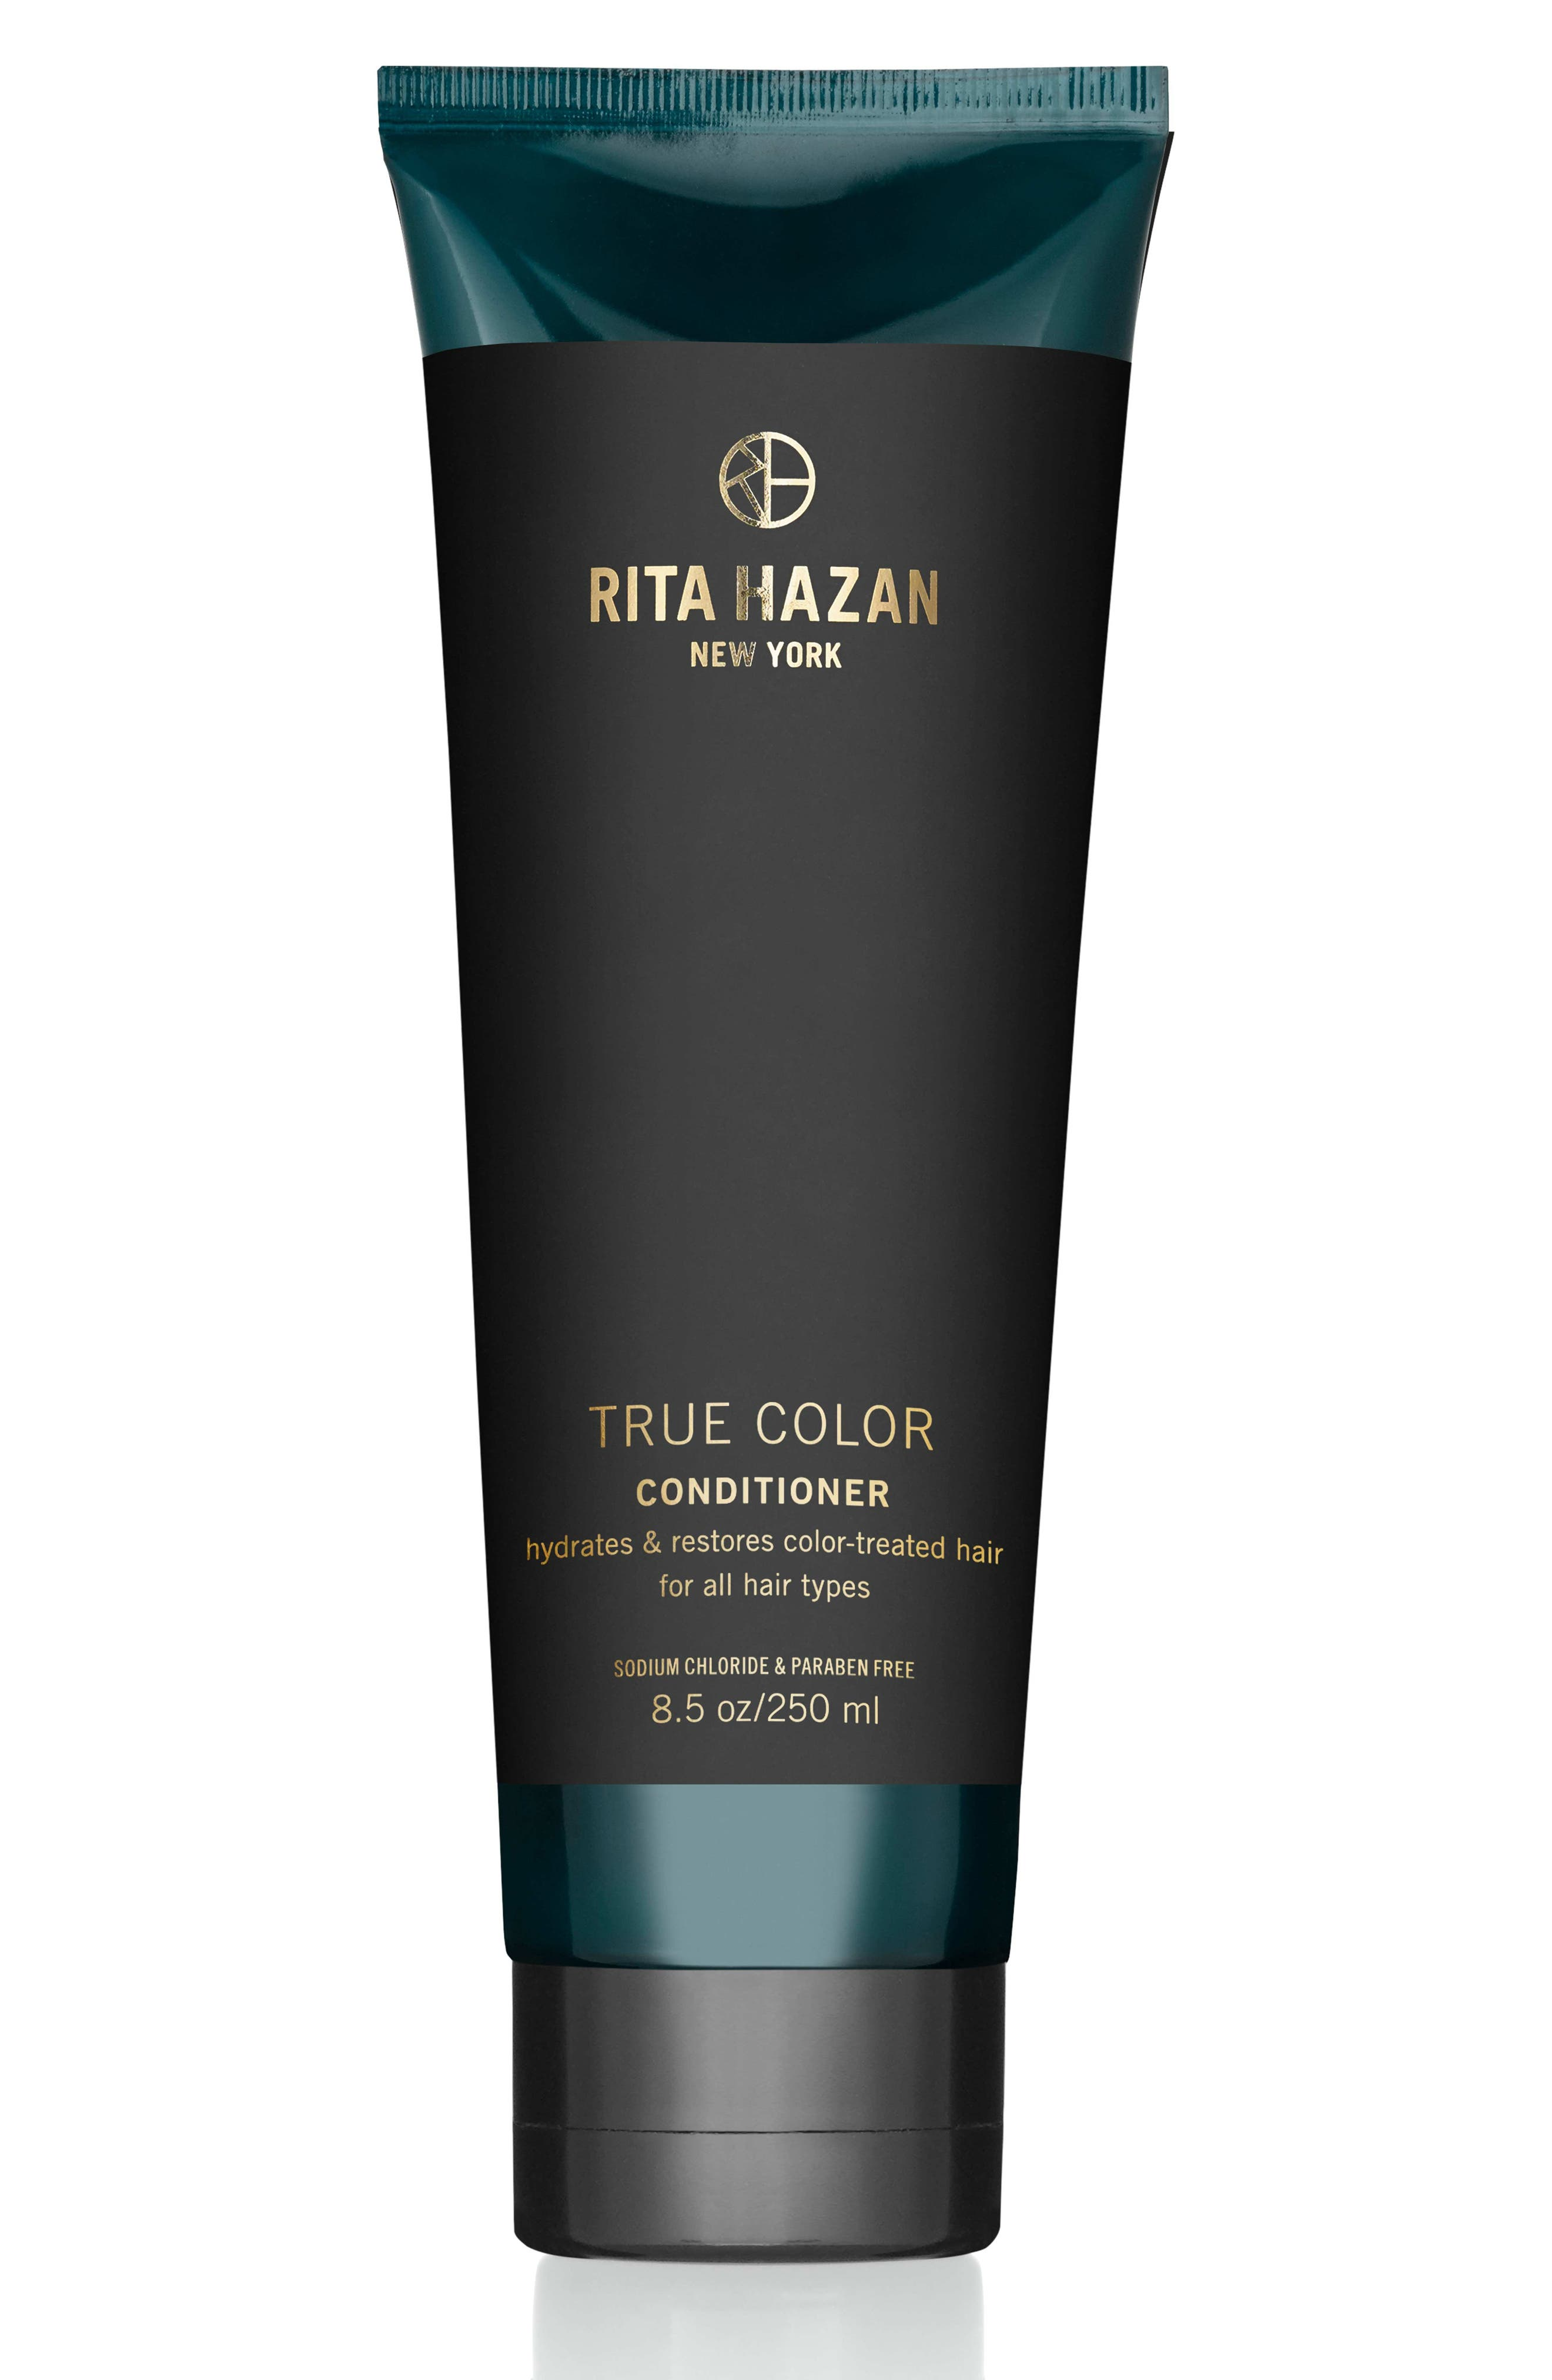 Alternate Image 1 Selected - RITA HAZAN NEW YORK 'True Color' Conditioner